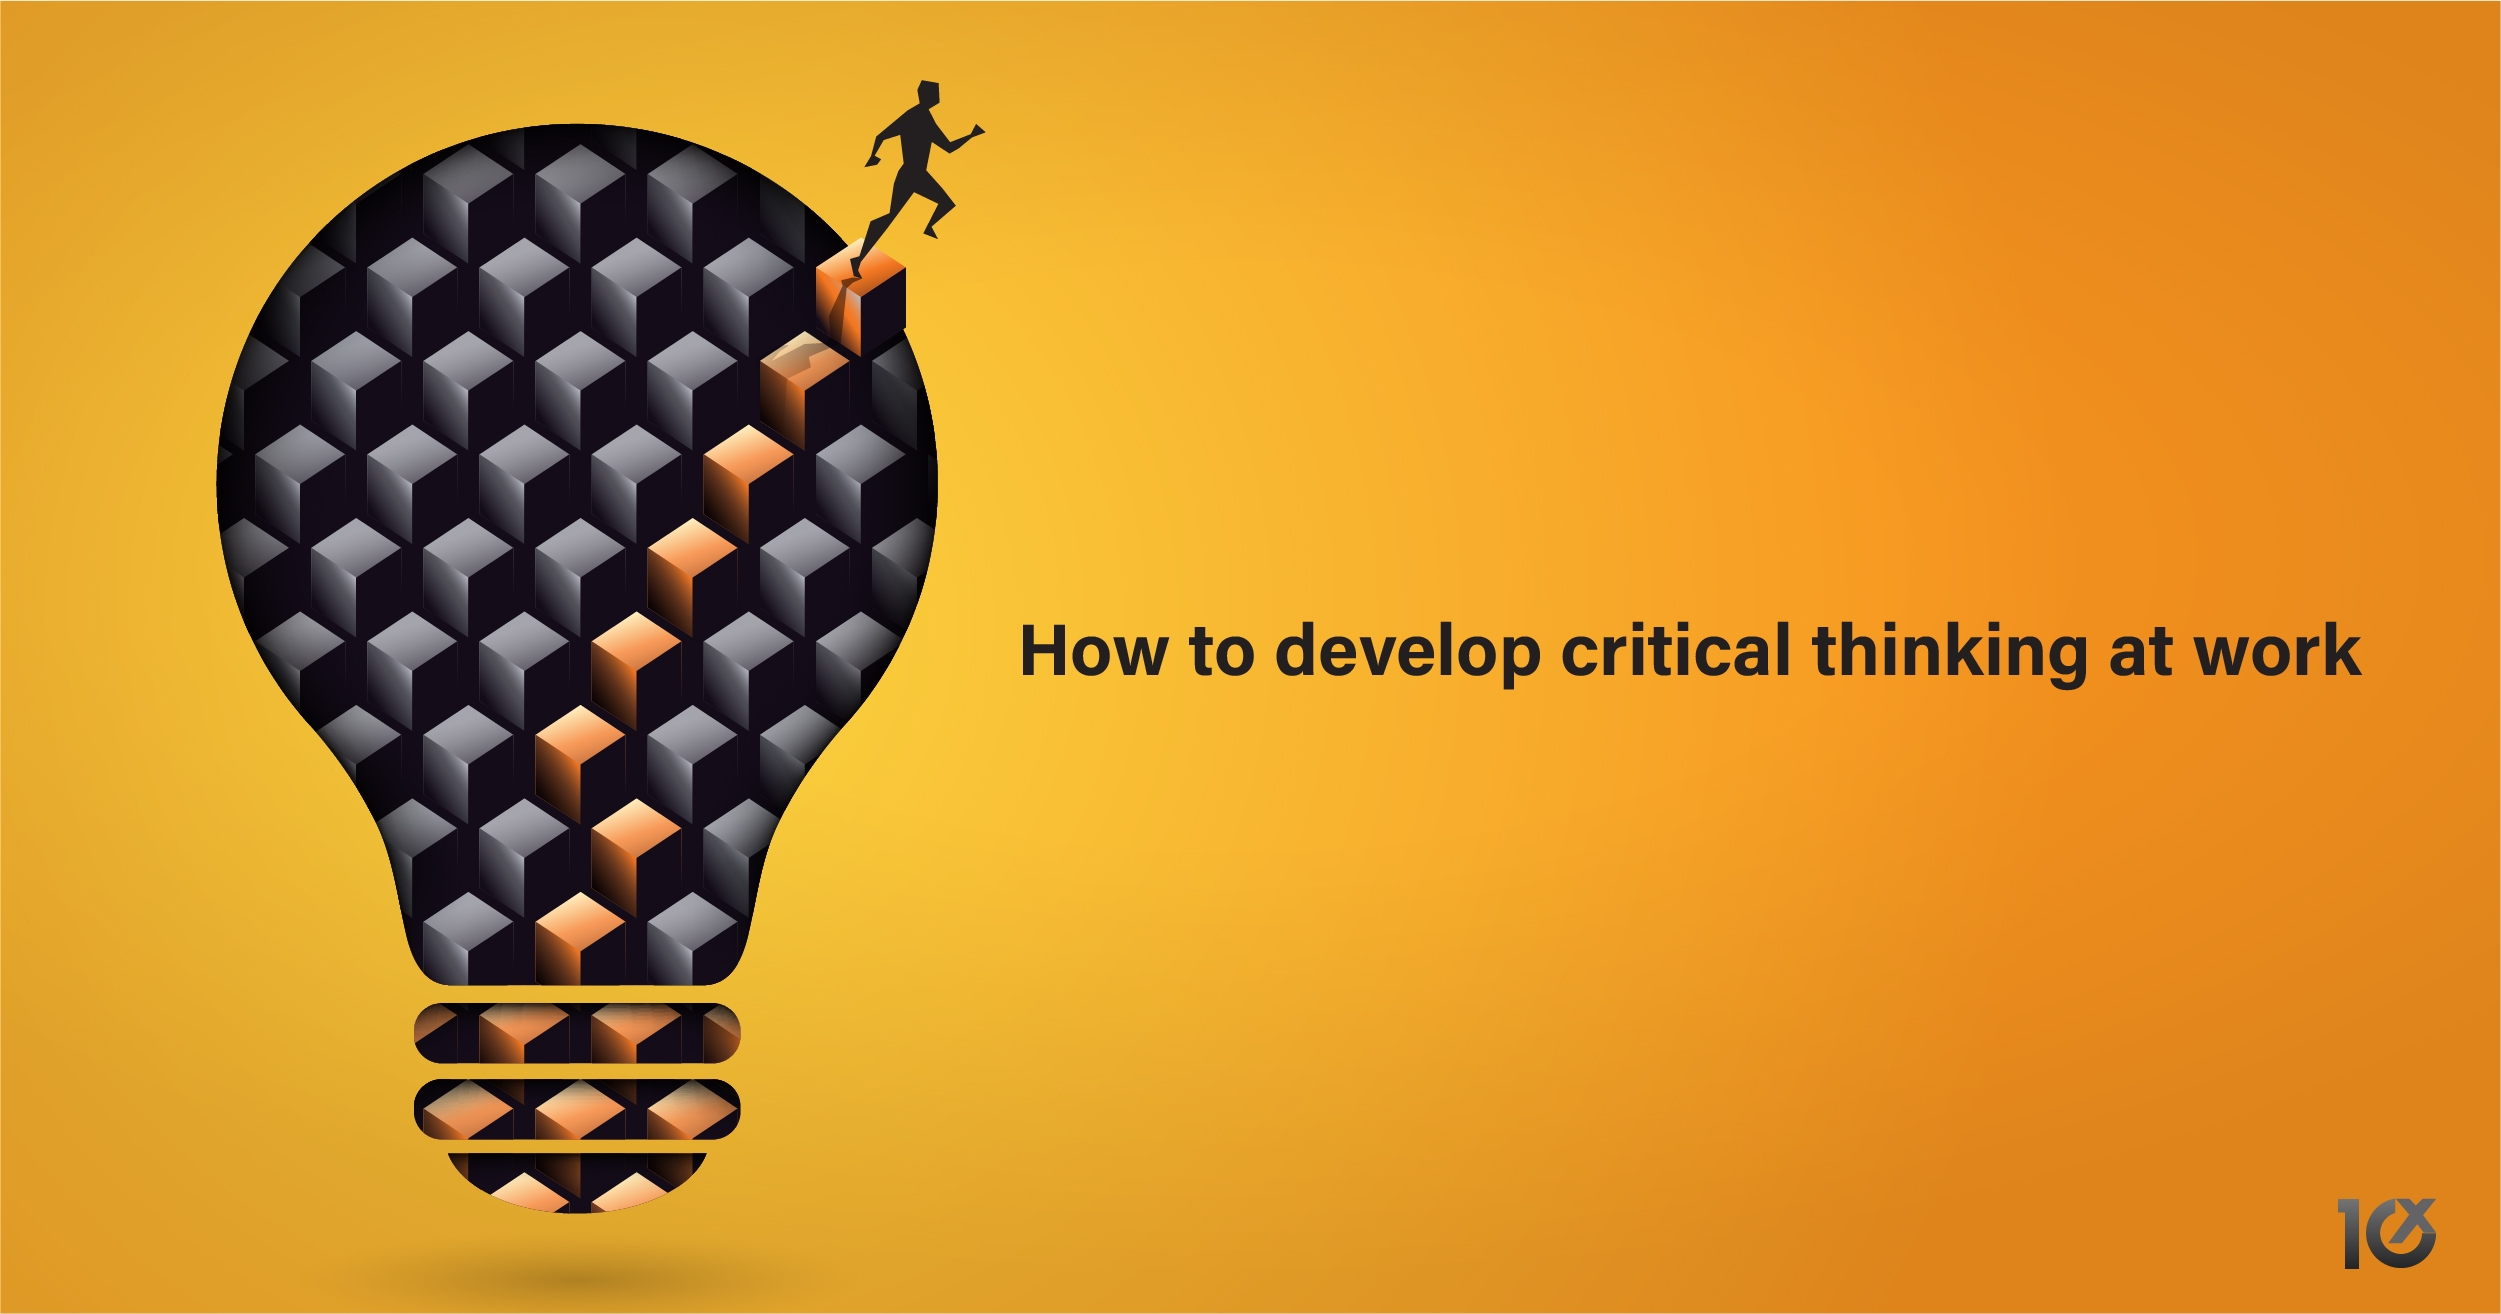 Ways to Promote Critical Thinking in the Workplace